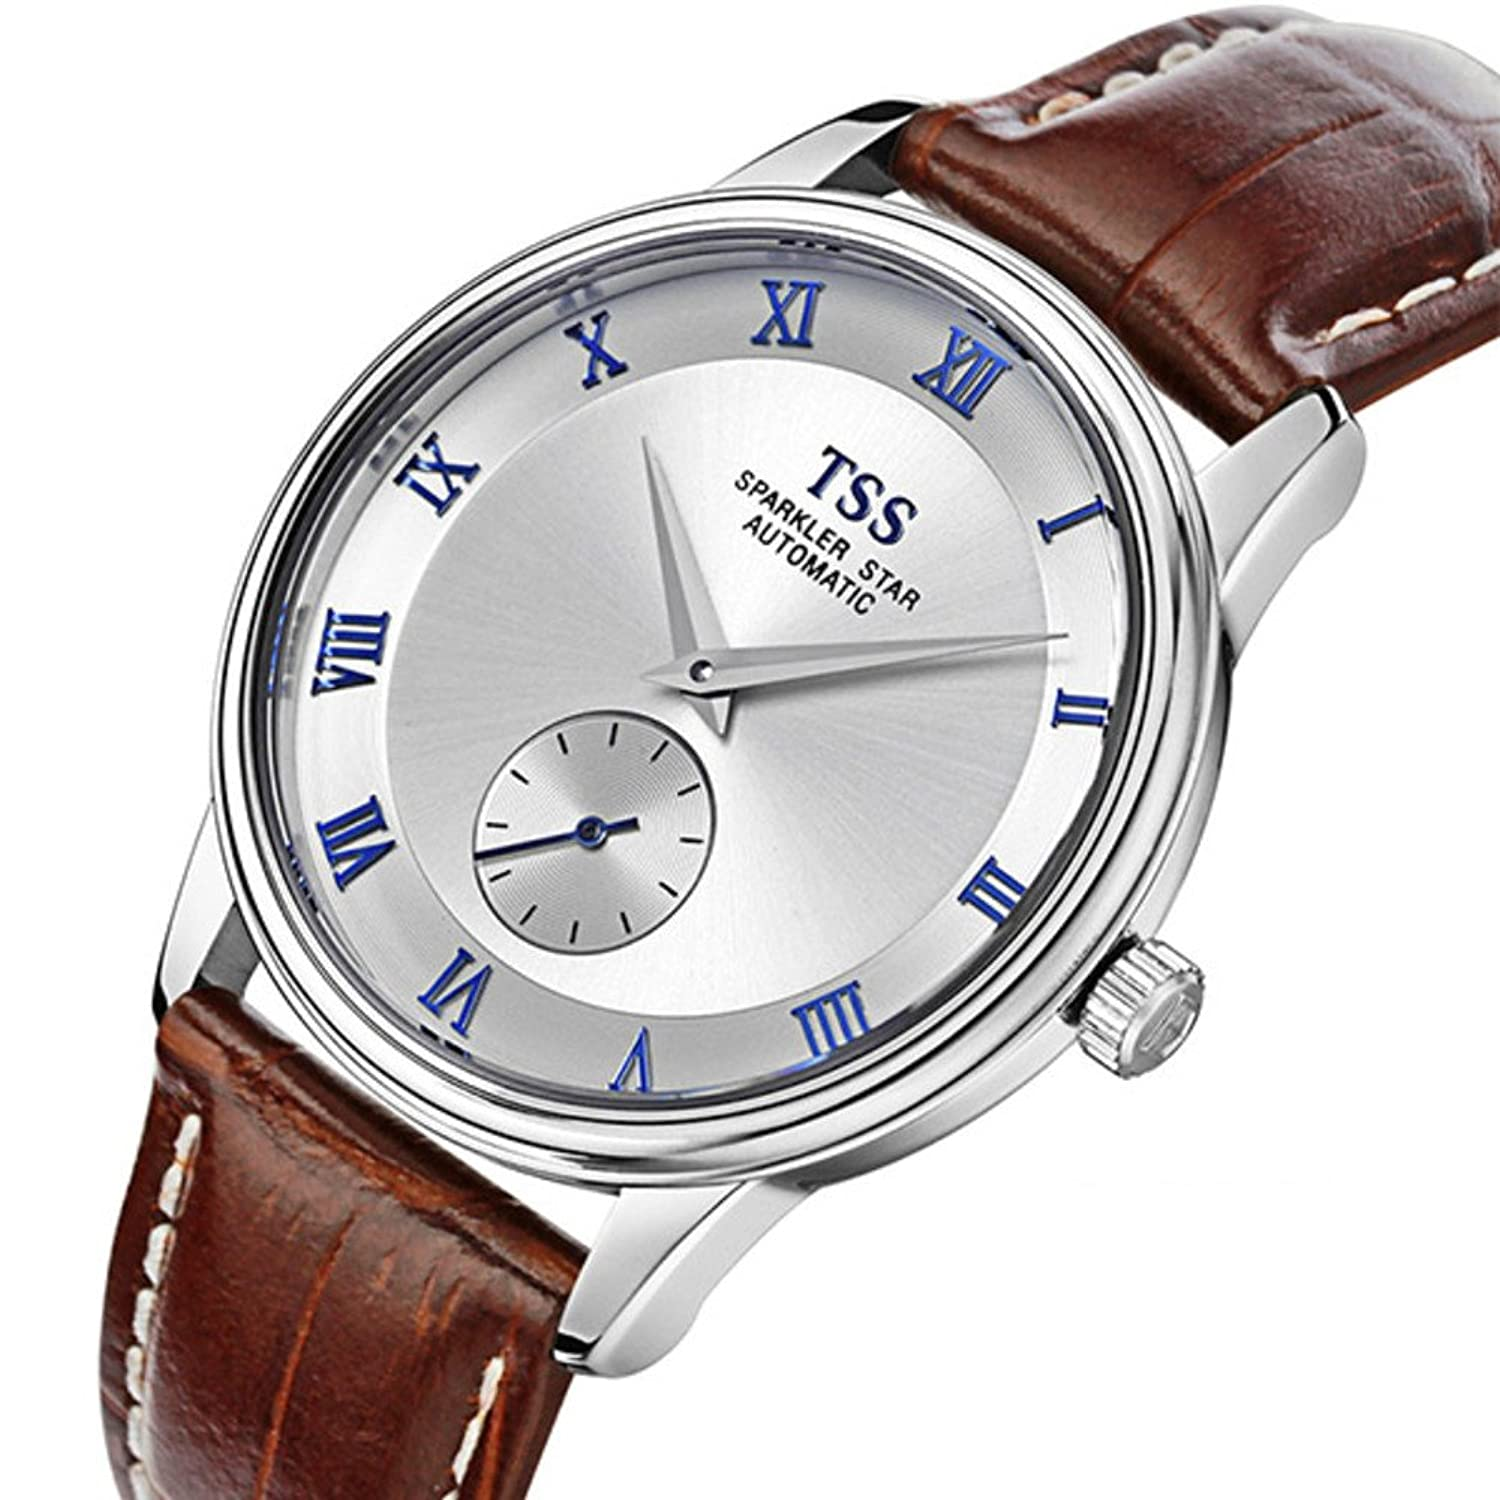 Hohle Handgelenk Herrenuhr-Mode wasserdicht Business Watch-L